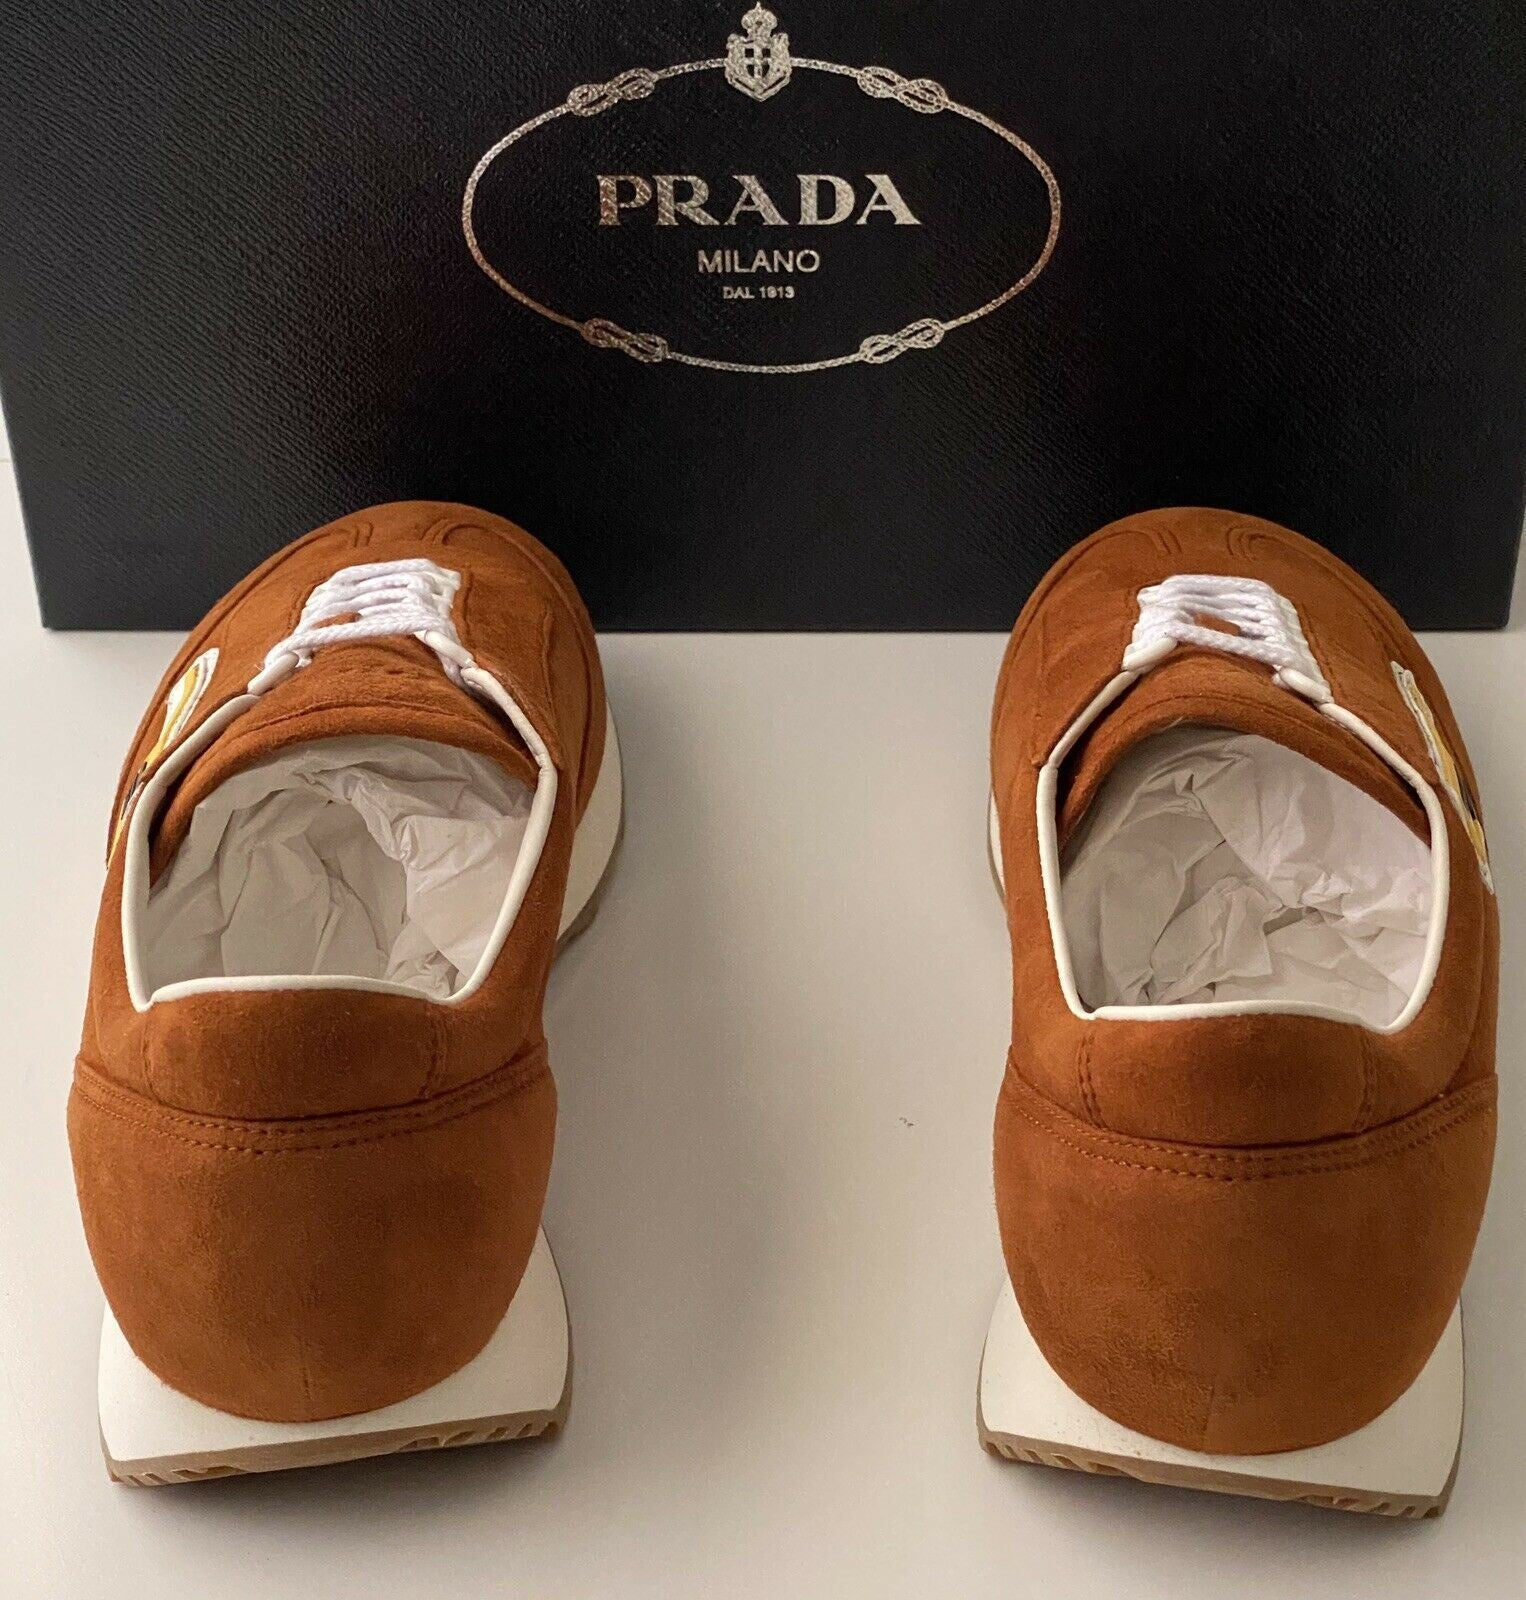 NIB $810 PRADA Men's Brown  Suede/Leather Sneakers 11 US 2EG286 Made in Italy